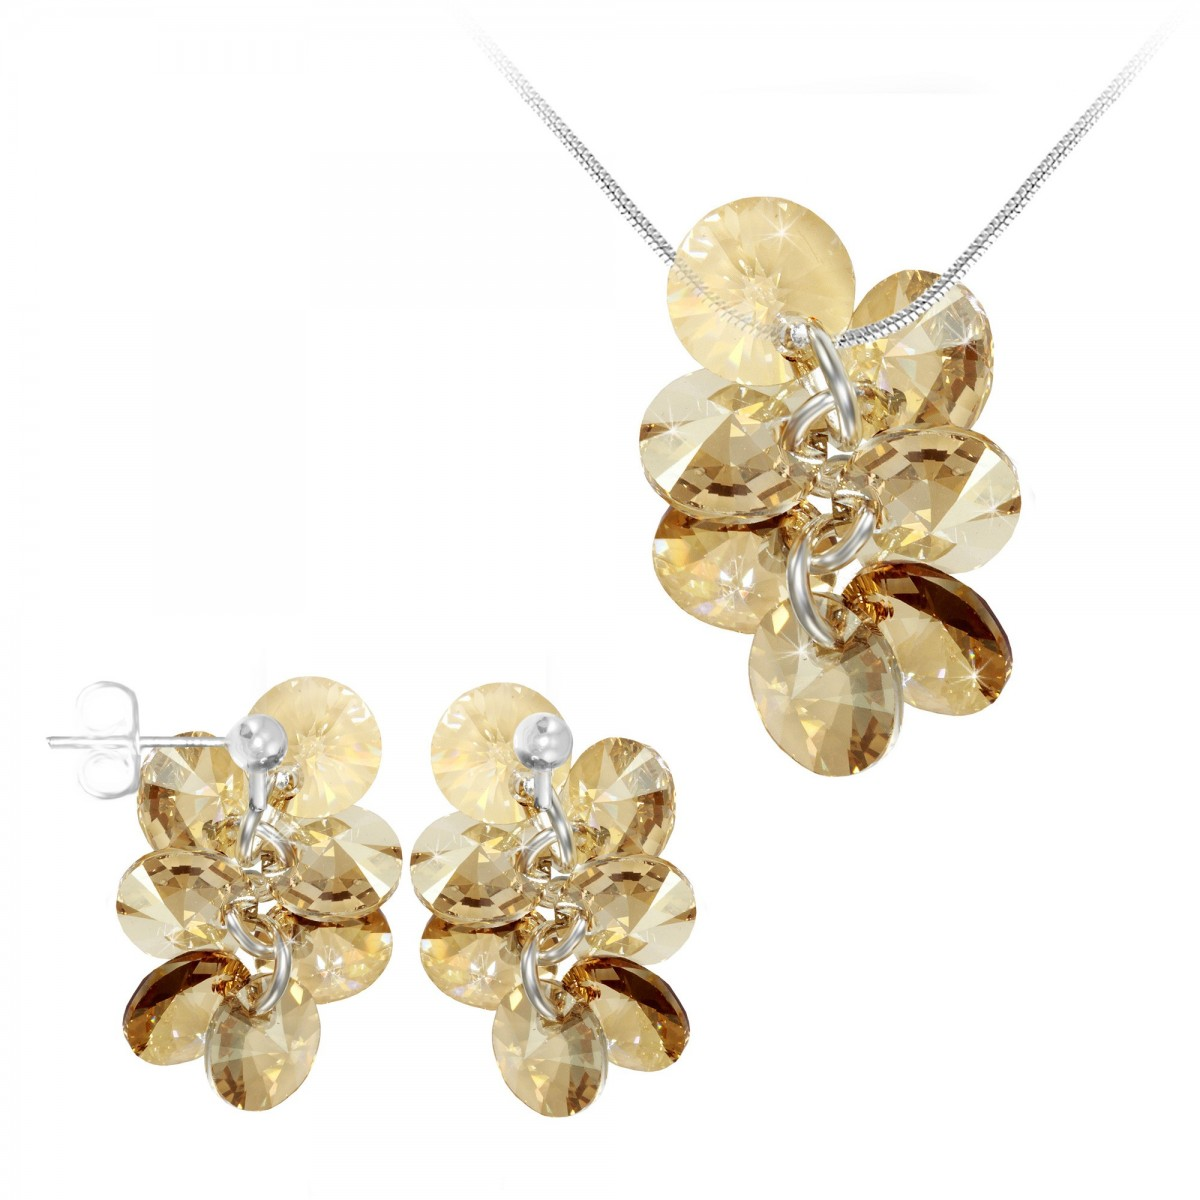 Parure collier et boucles d'oreilles mode So Charm made with crystals from Swarovski golden shadow